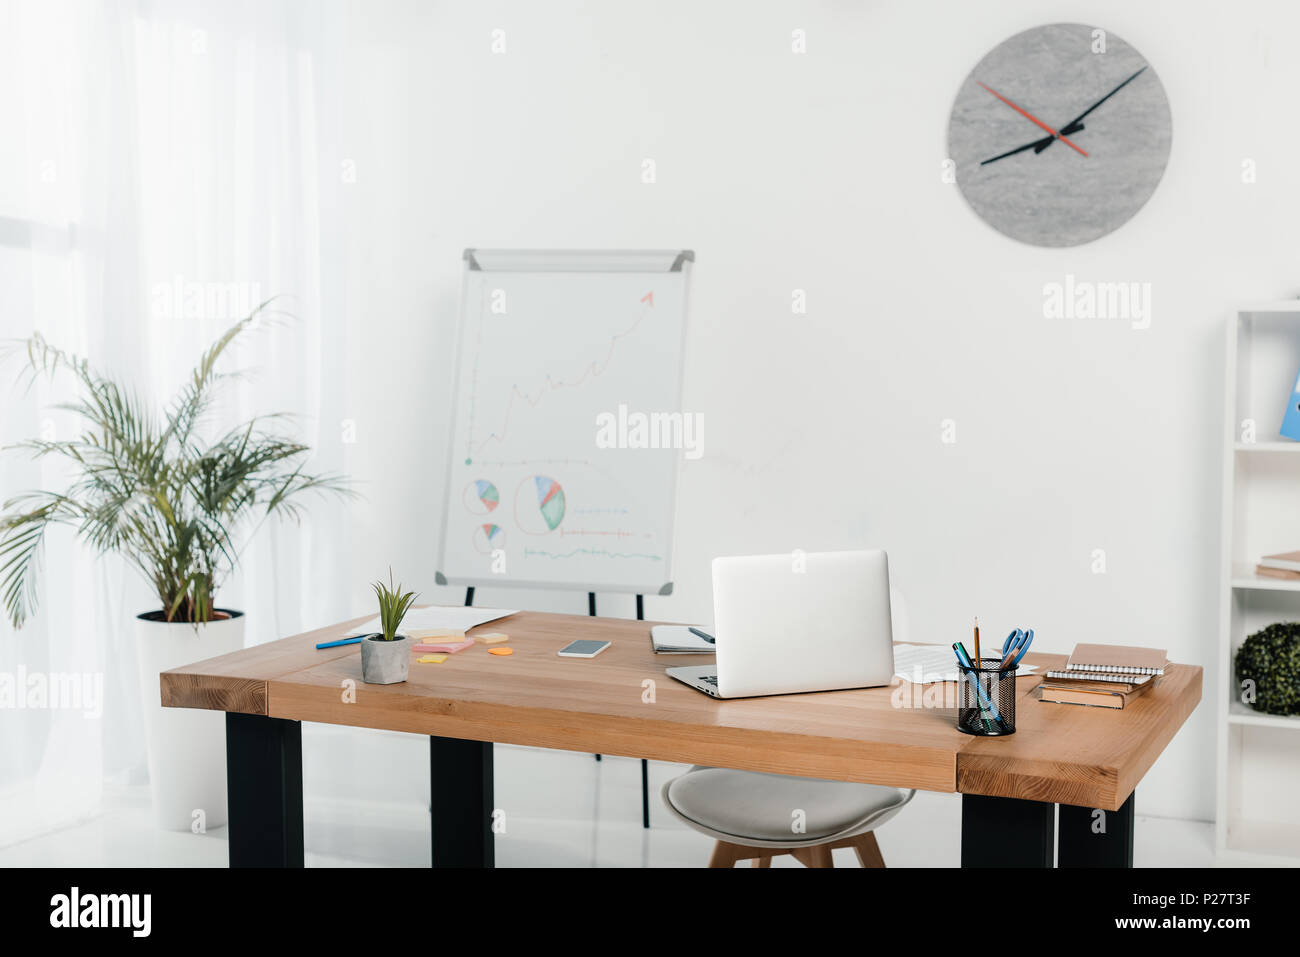 workplace with laptop and office supplies in office with white board and clock - Stock Image